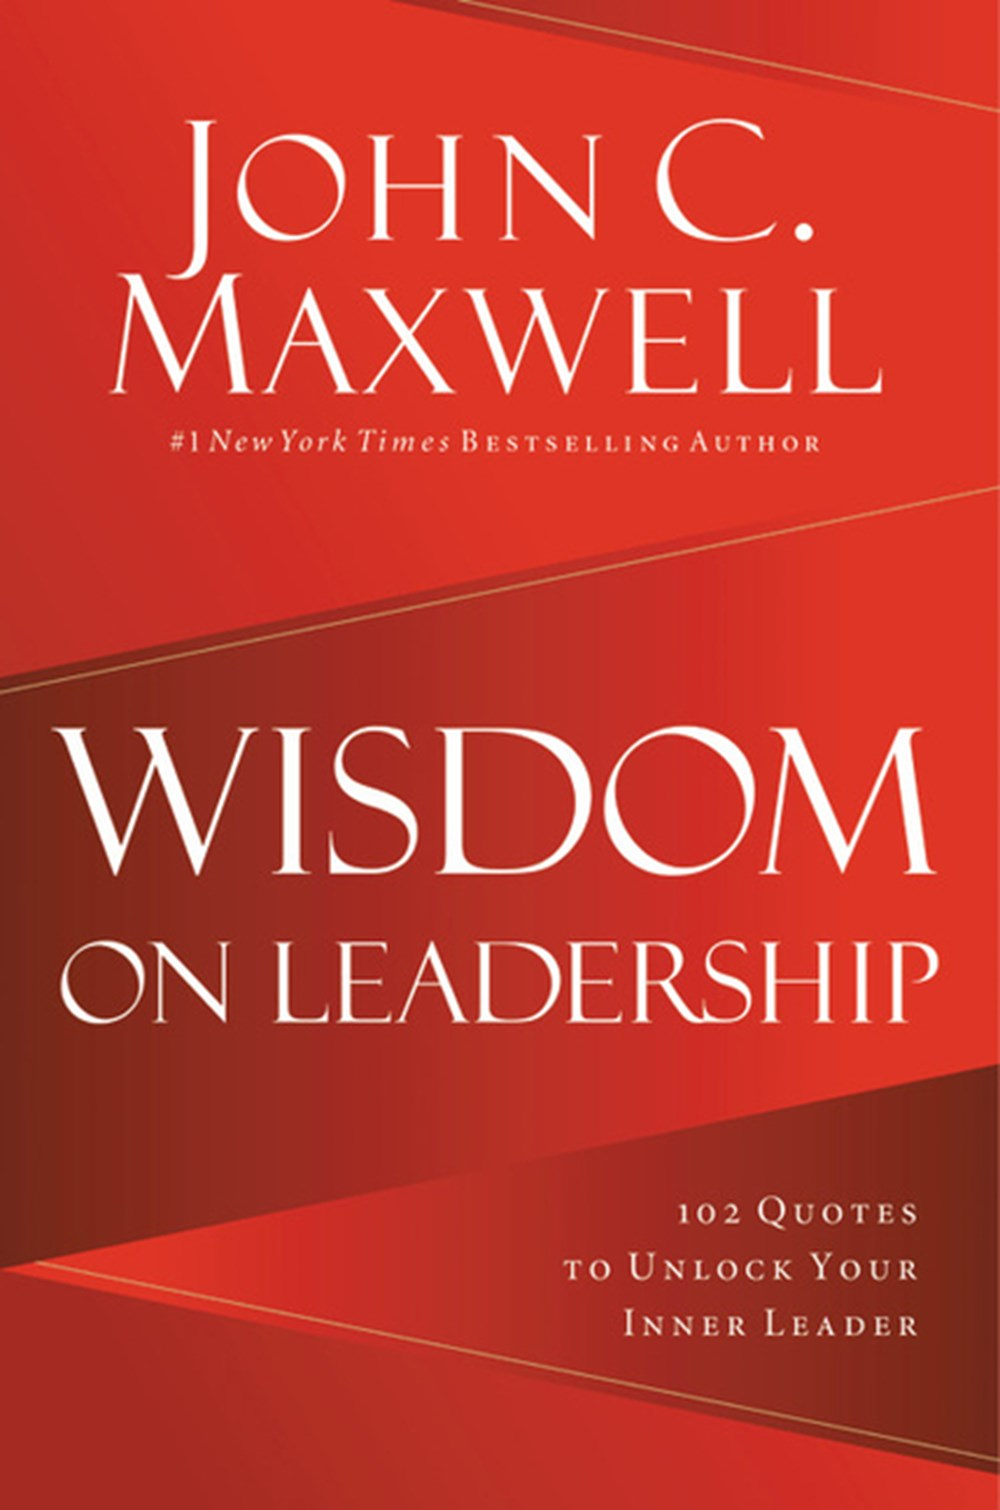 Wisdom on Leadership 102 Quotes to Unlock Your Potential to Lead